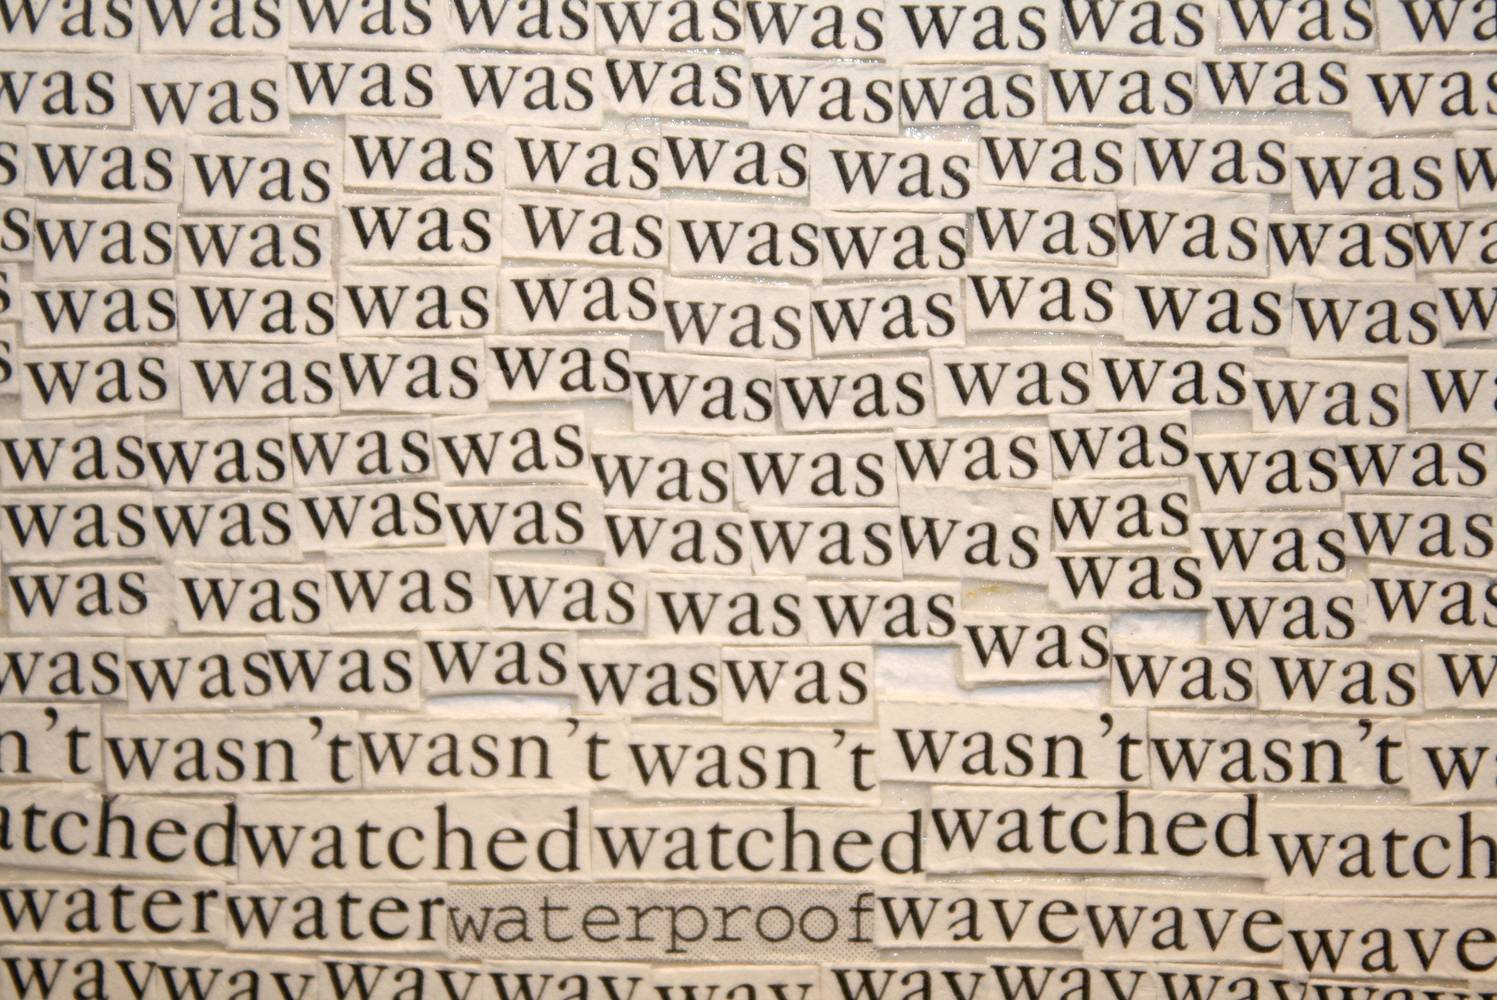 Drawing detail of 'was' page( Snicket, Lemony, A Series of Unfortunate Events: A Bad Beginning New York: HarperCollins, 1999.) by Emma Lehto